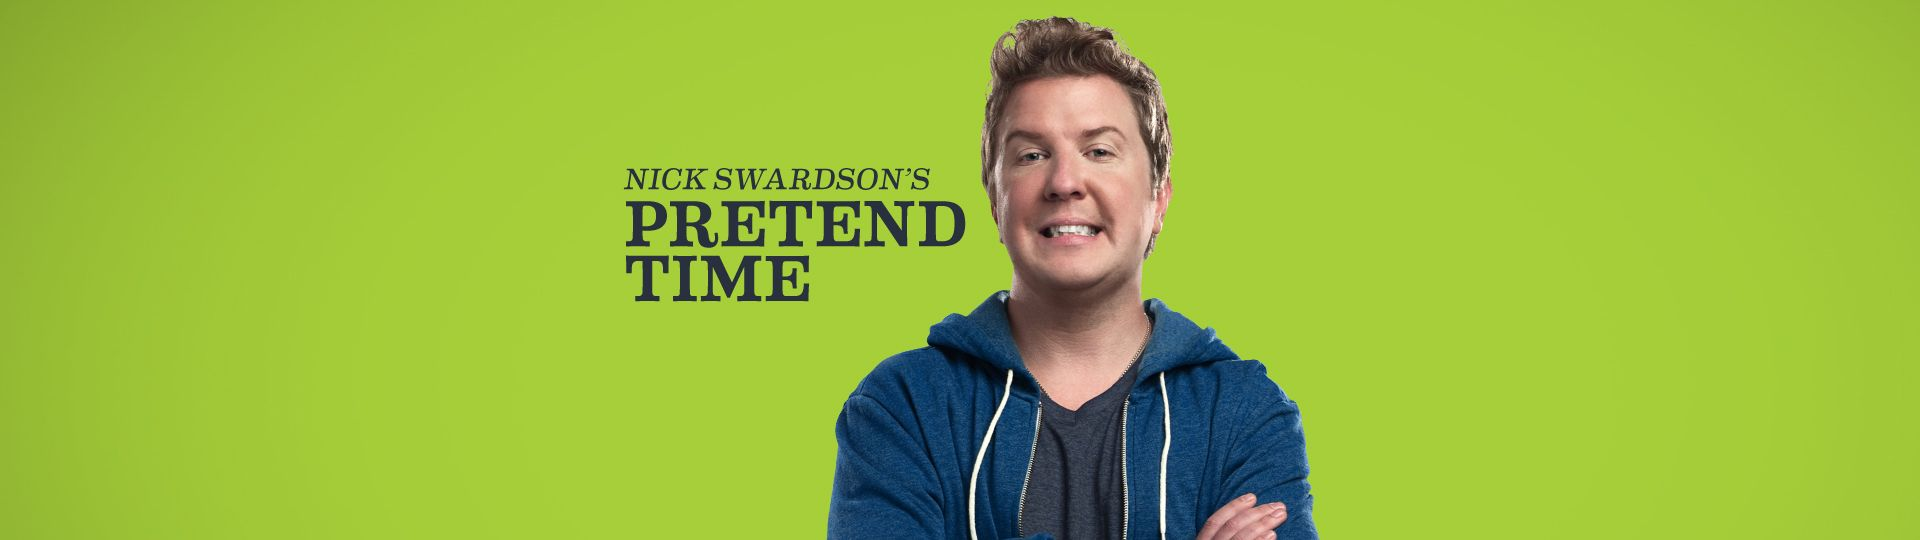 nick swardson massage